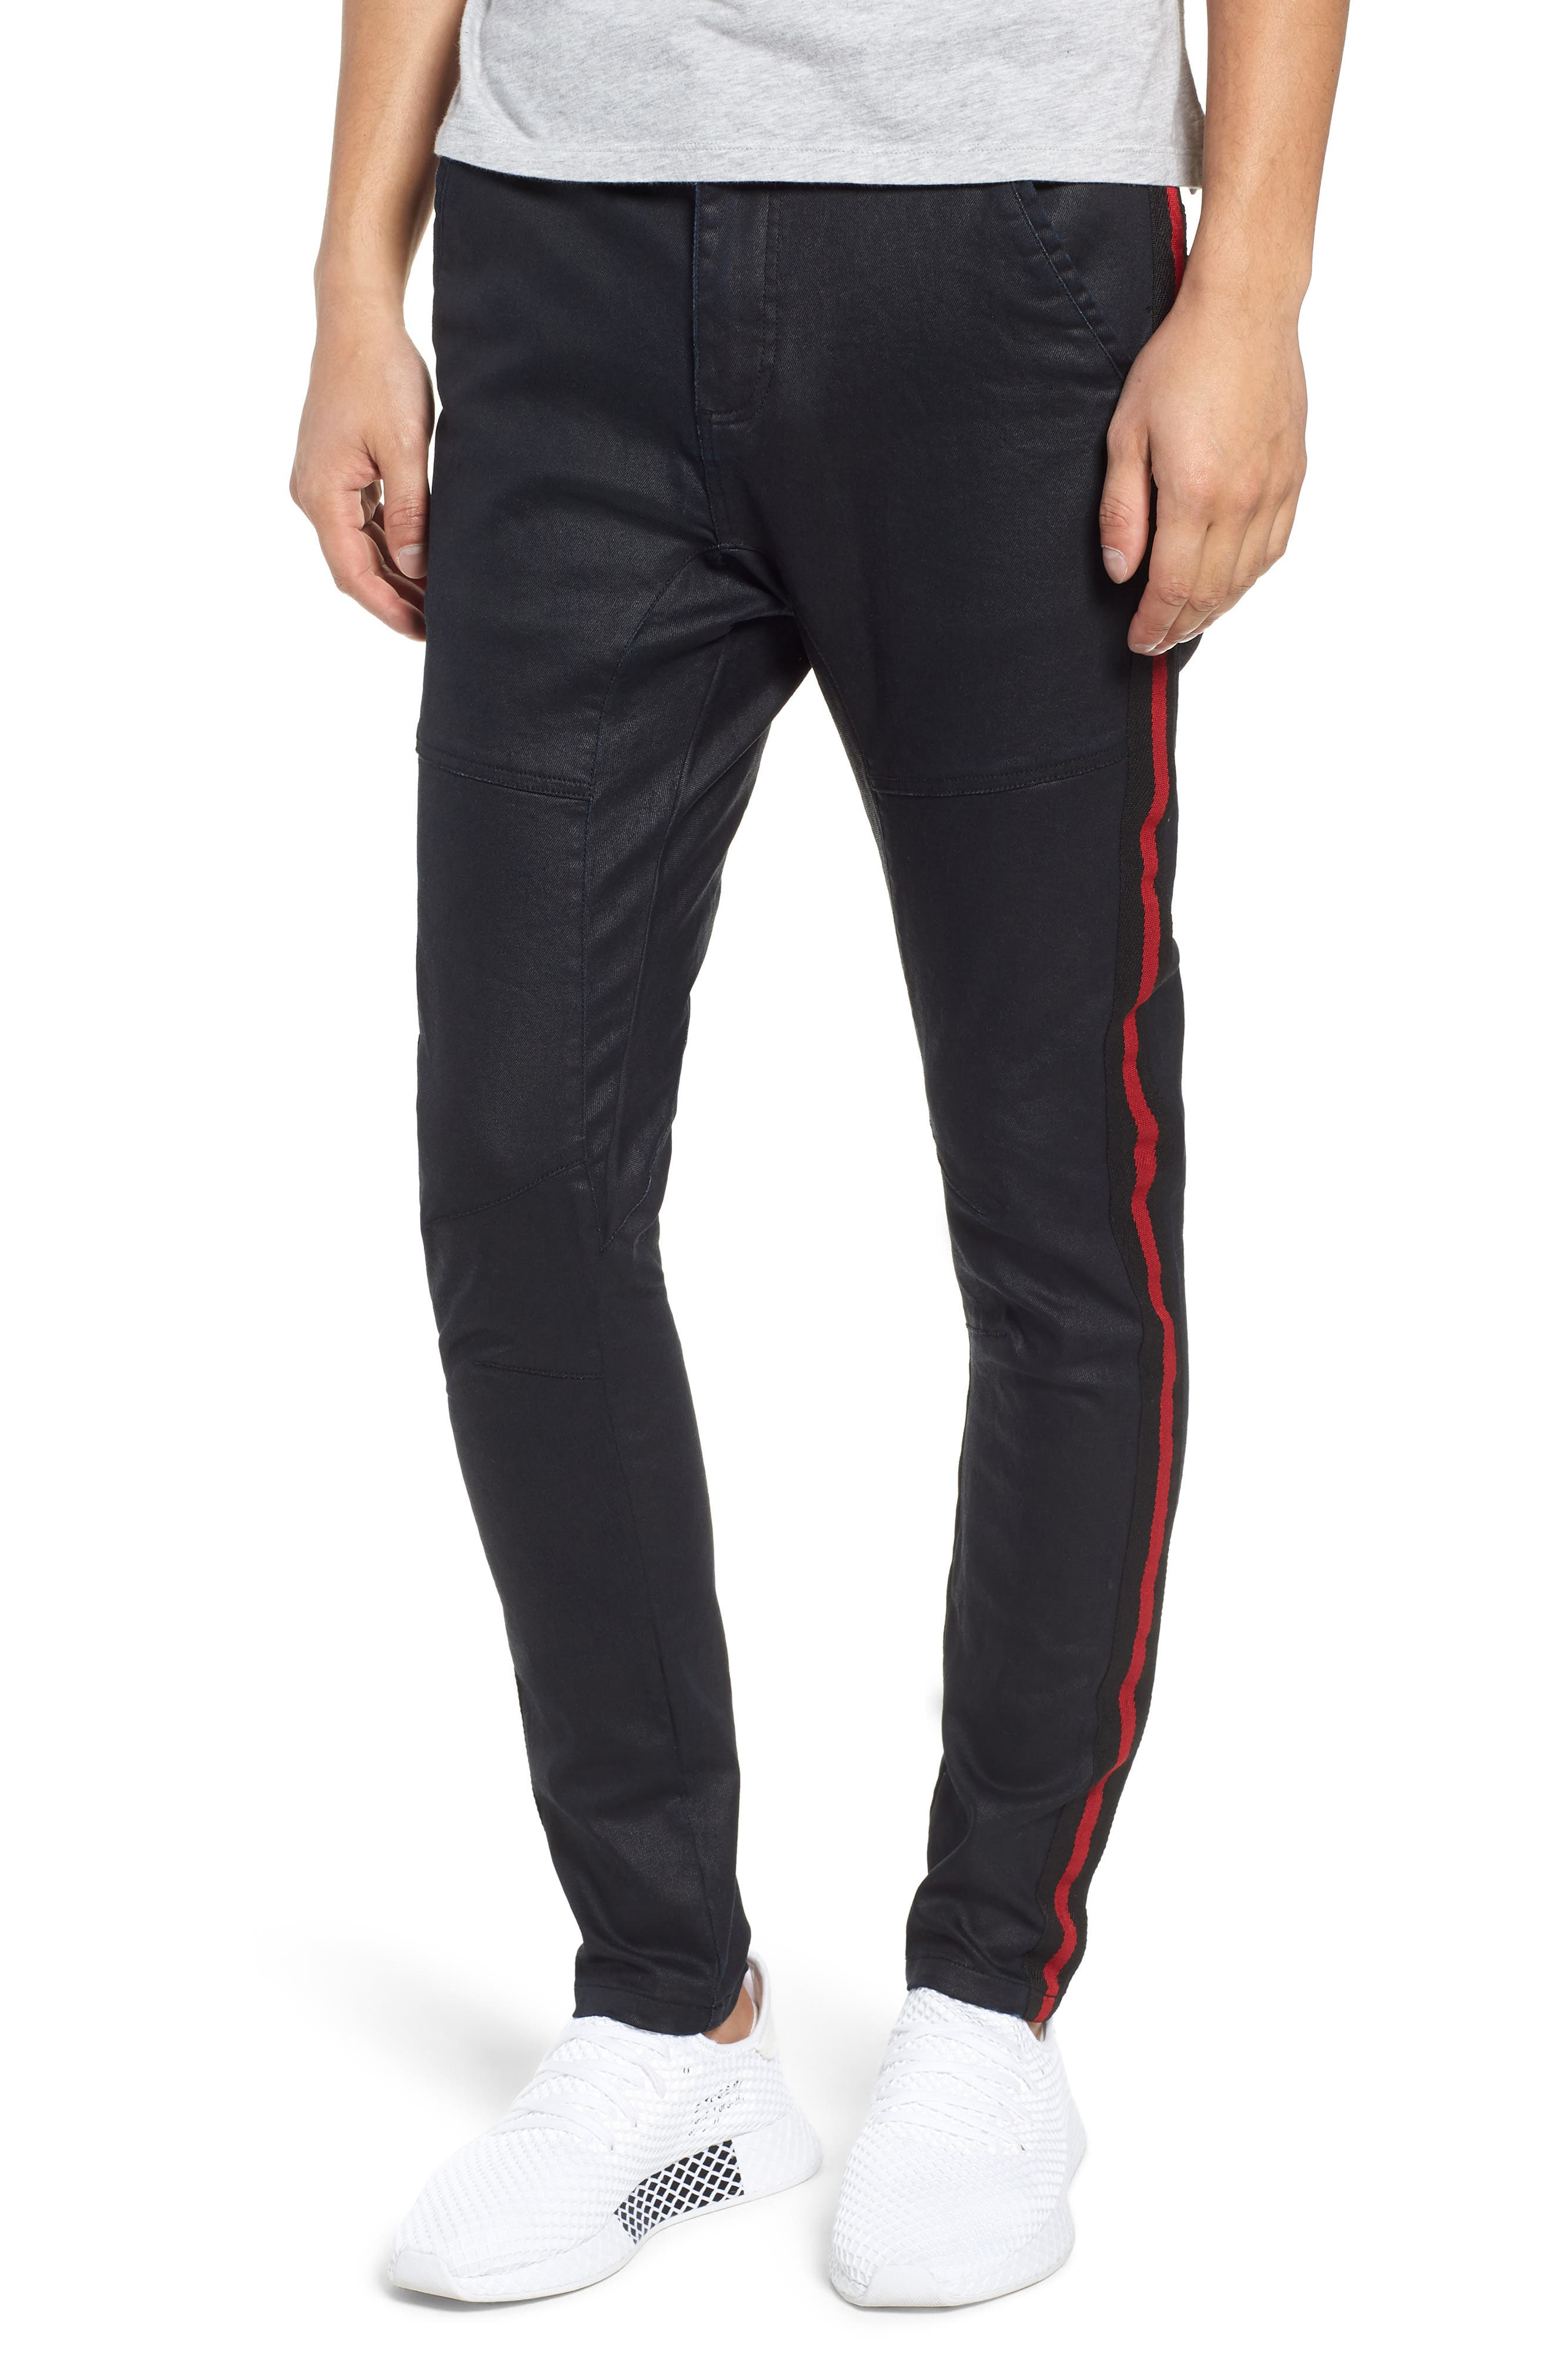 Baseline Taped Skinny Fit Jeans,                         Main,                         color, WAX BLACK RED STRIPE